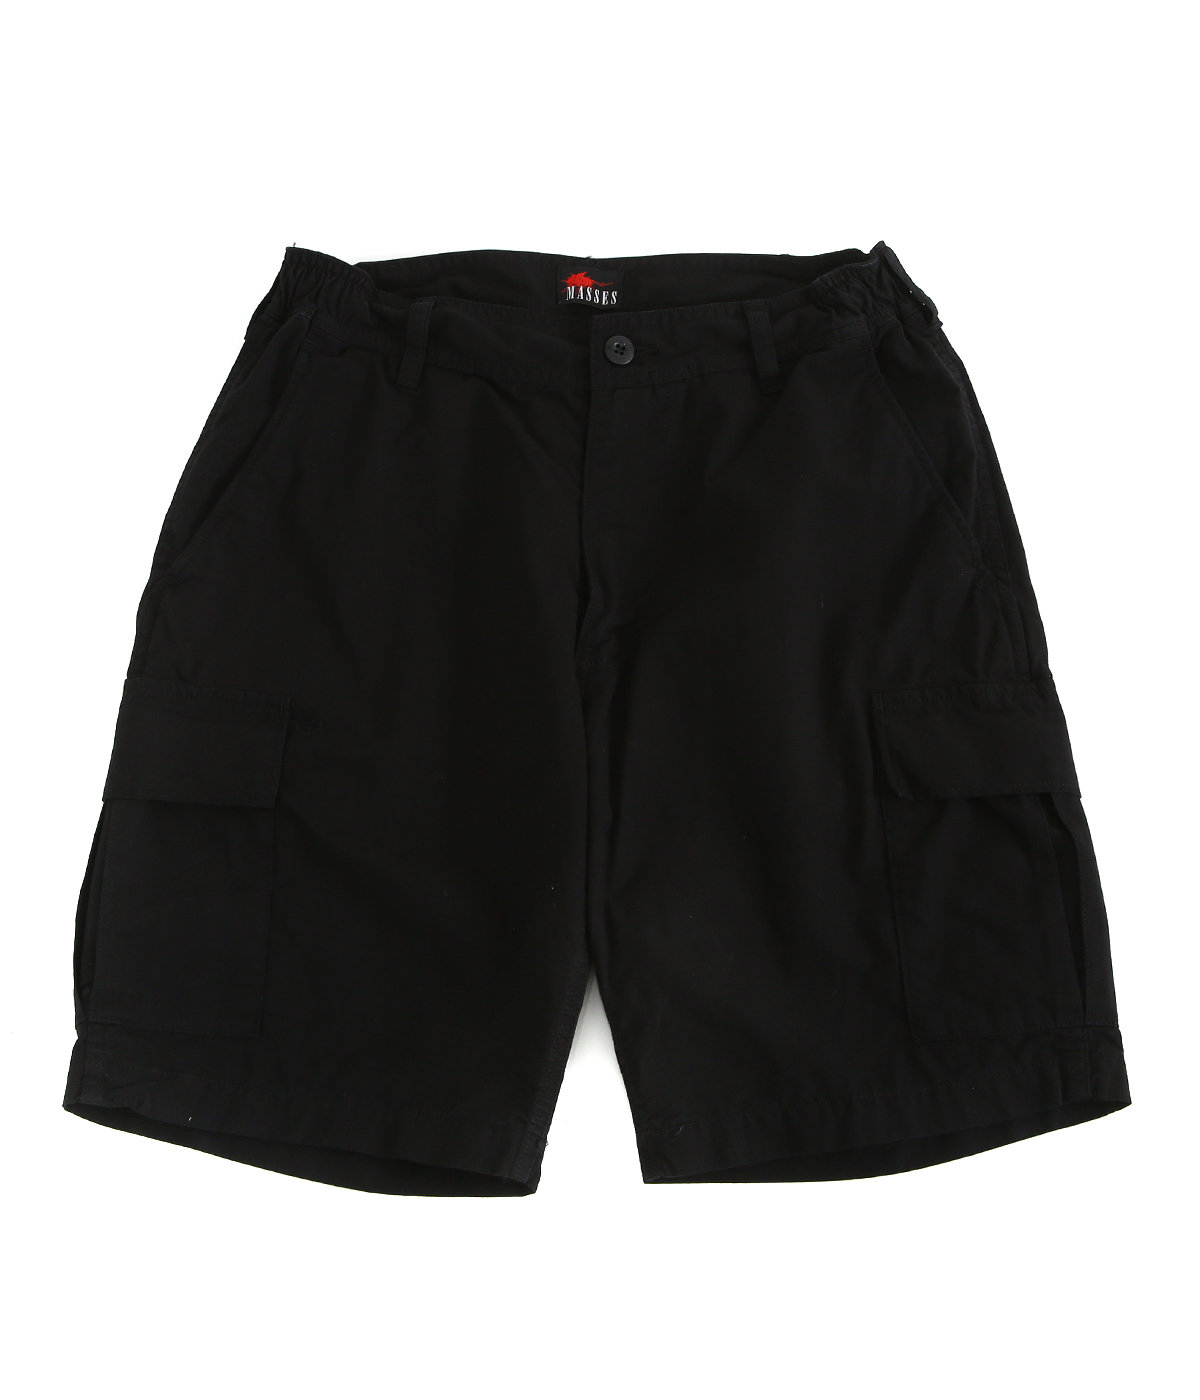 SIX POCKET SHORTS